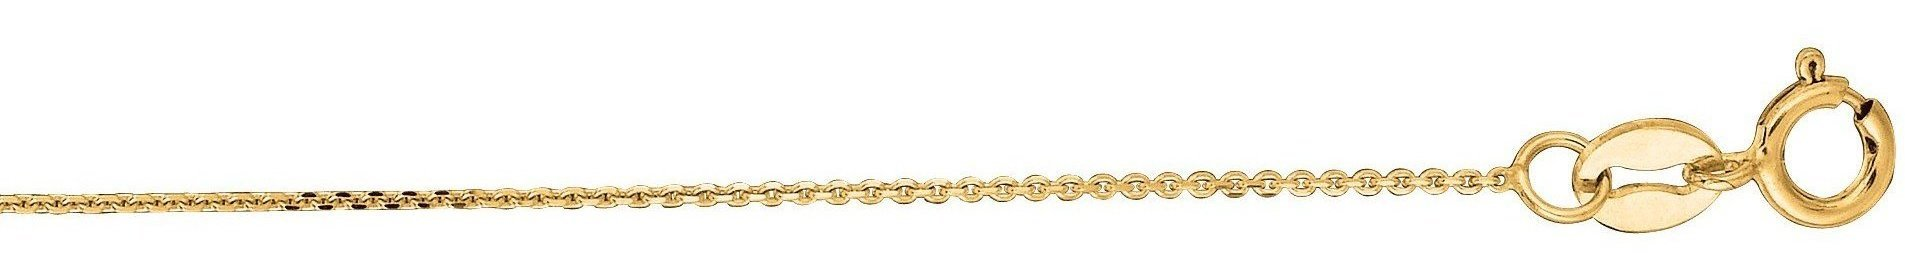 "16"" 10K Yellow Gold 0.8mm (0.03"") Polished Diamond Cut Cable Chain w/ Lobster Clasp"